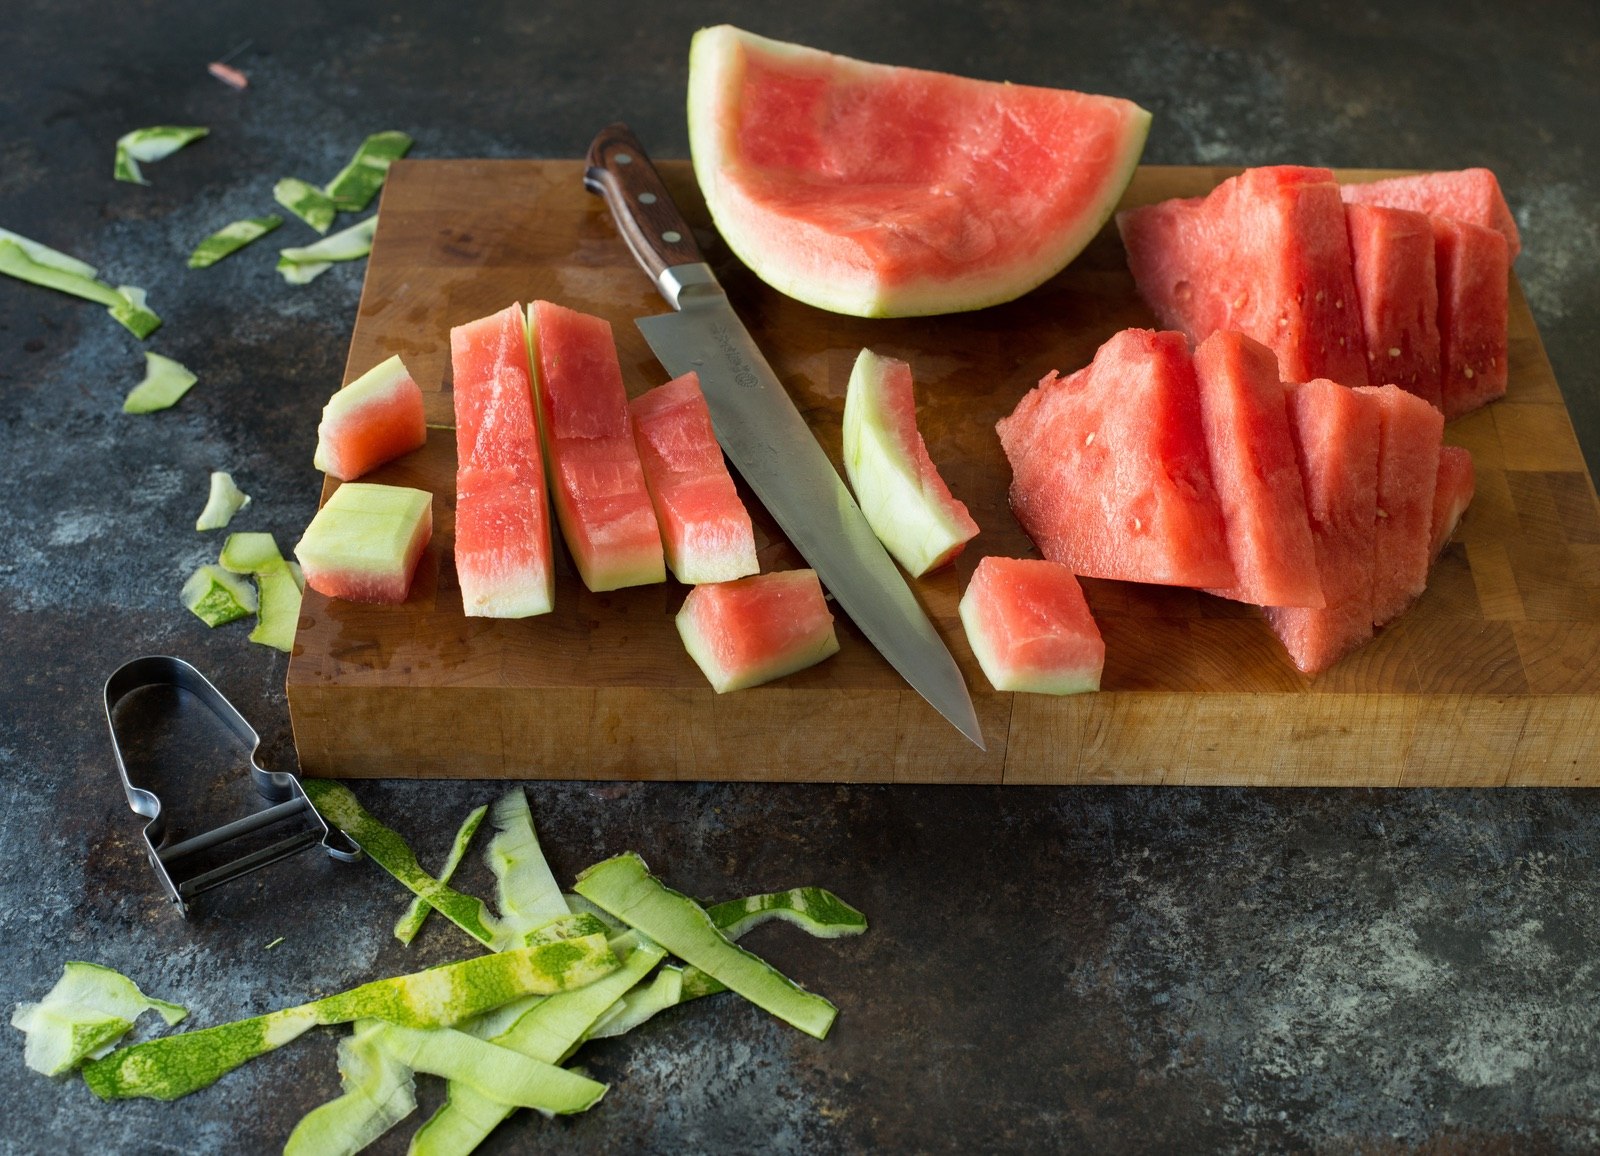 sliced-watermelon-ready-for-smoothie